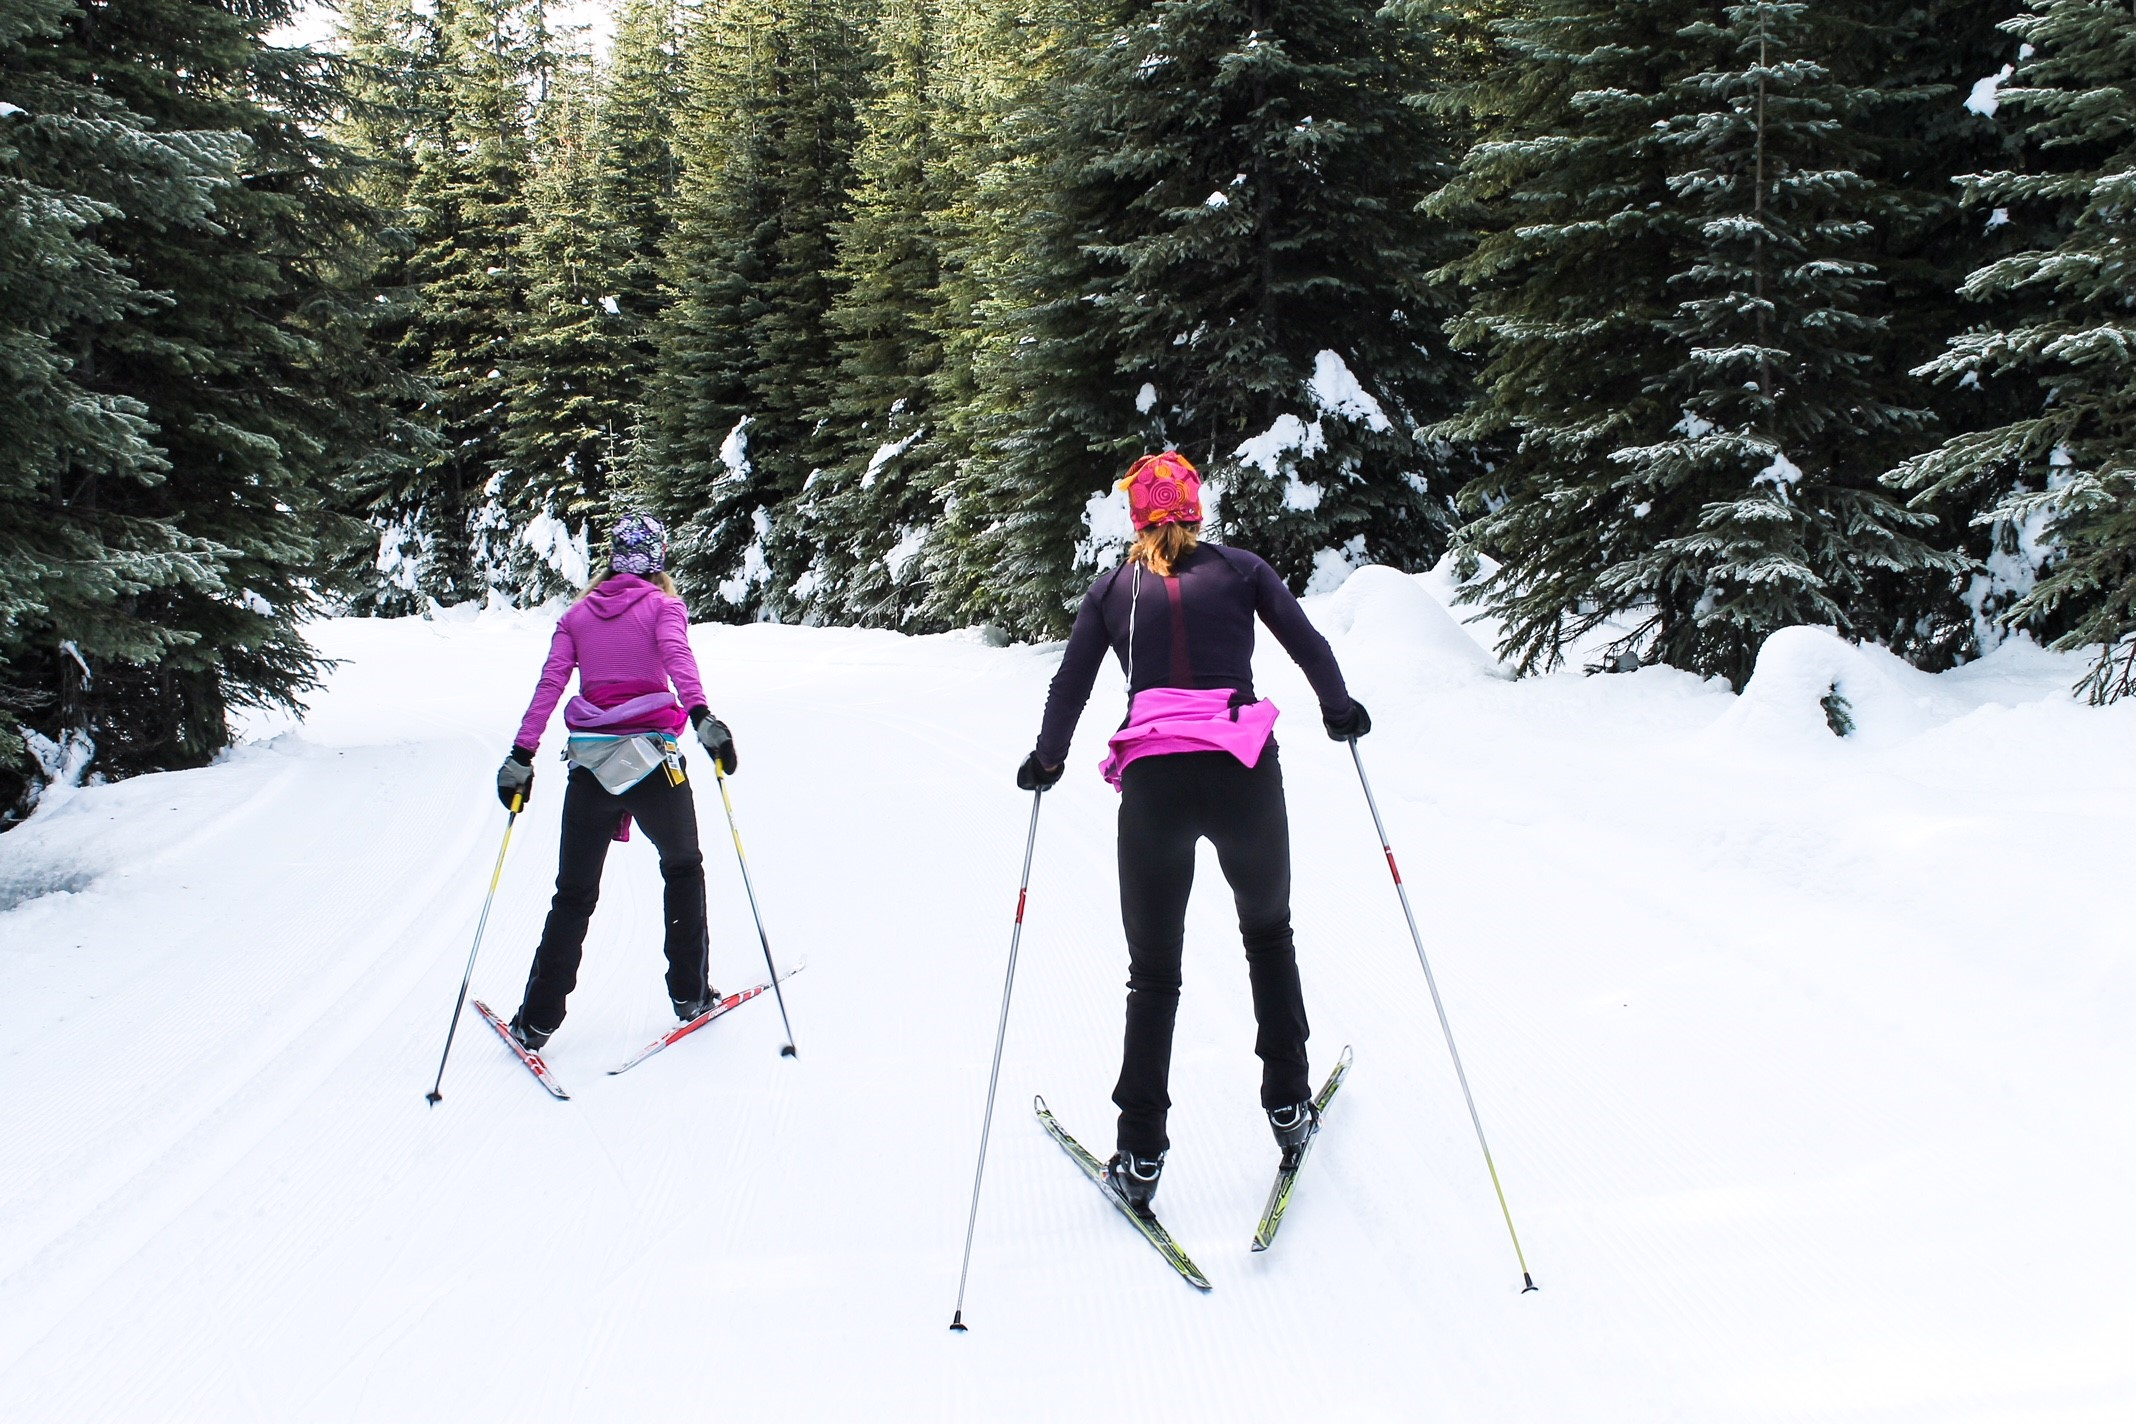 Sun Peaks Nordic Skiing - fun for all (photo by May Putnam)